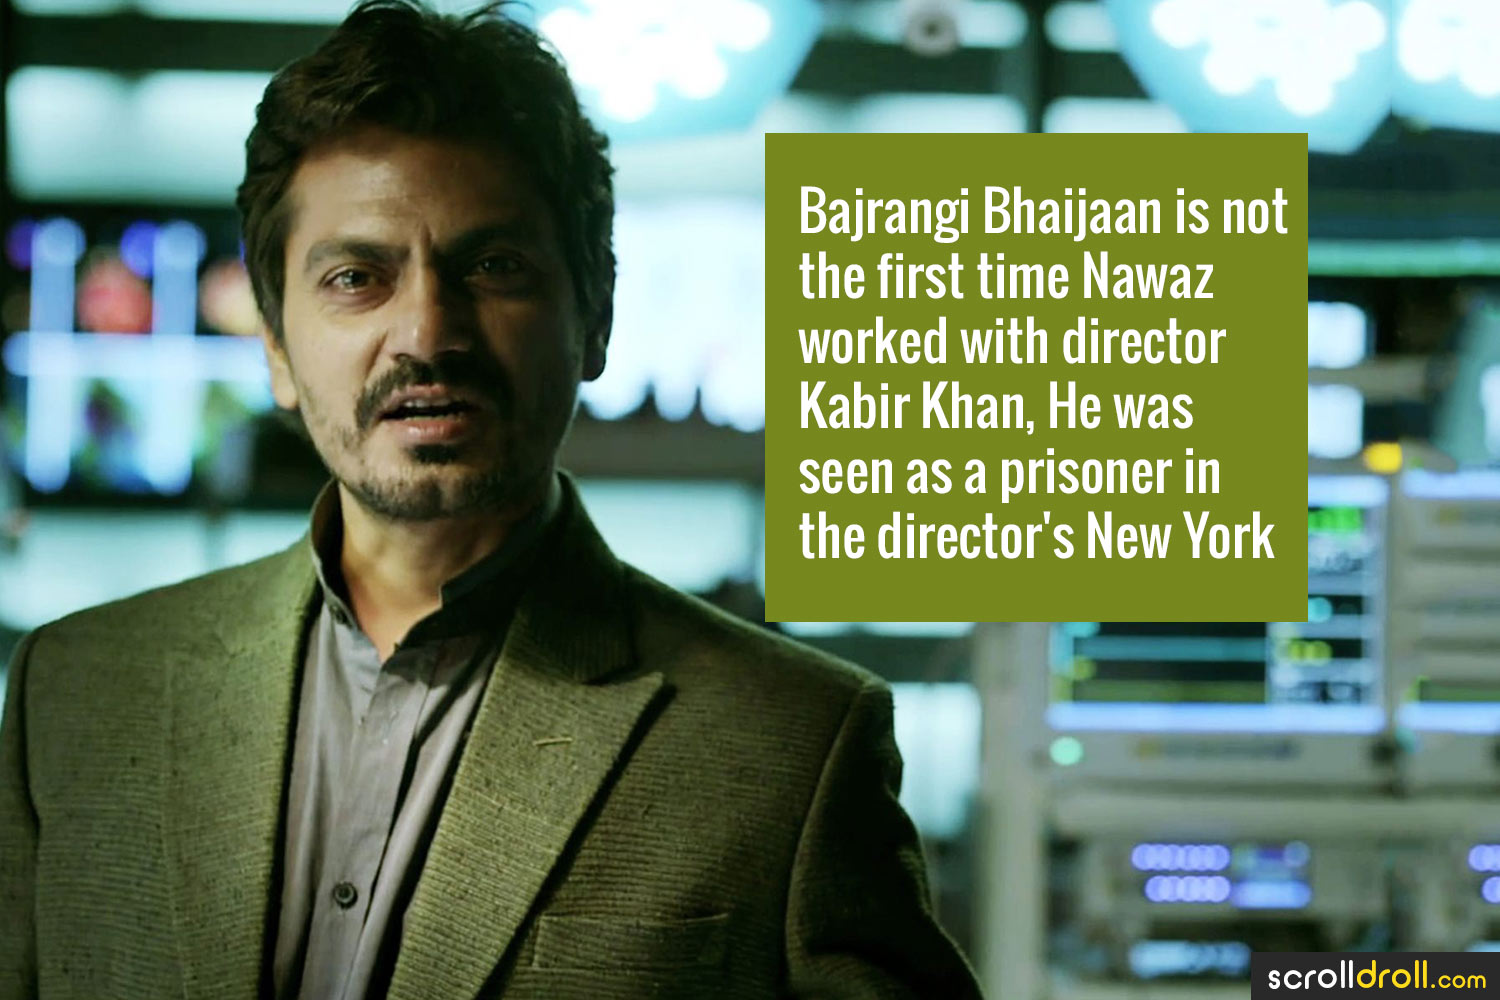 Facts about Nawazuddin Siddique-Bajrangi Bhaijaan is not the first time Nawaz Worked with director Kabir khan,He was seen as a prisoner in the director's New York